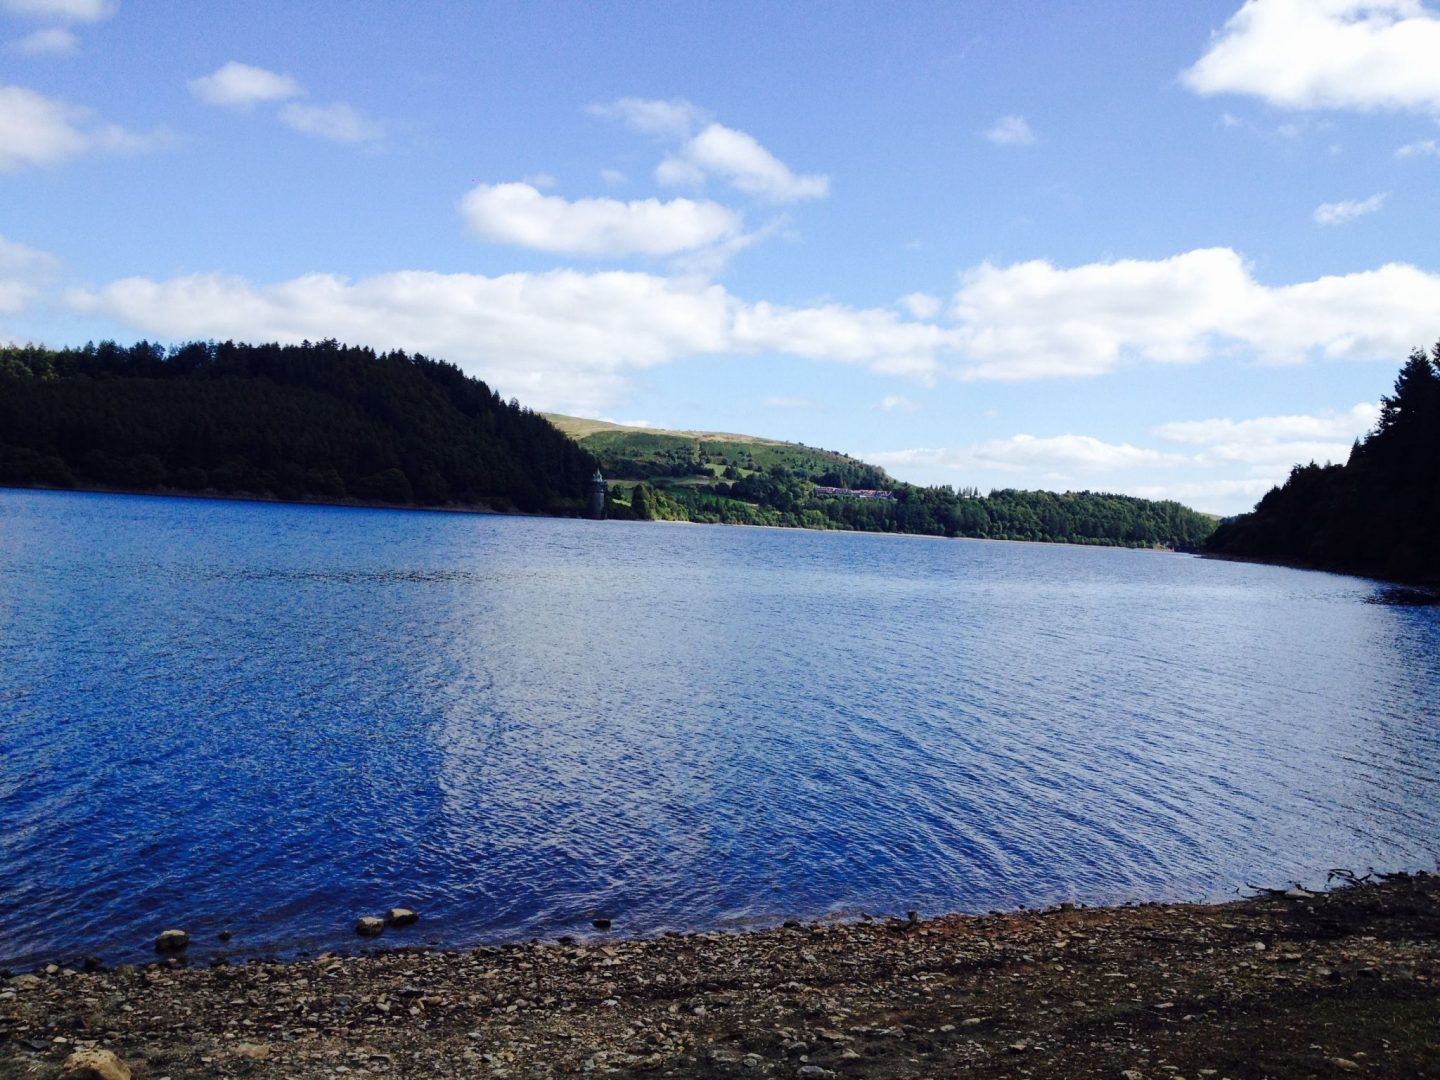 Views of Lake Vyrnwy, Wales